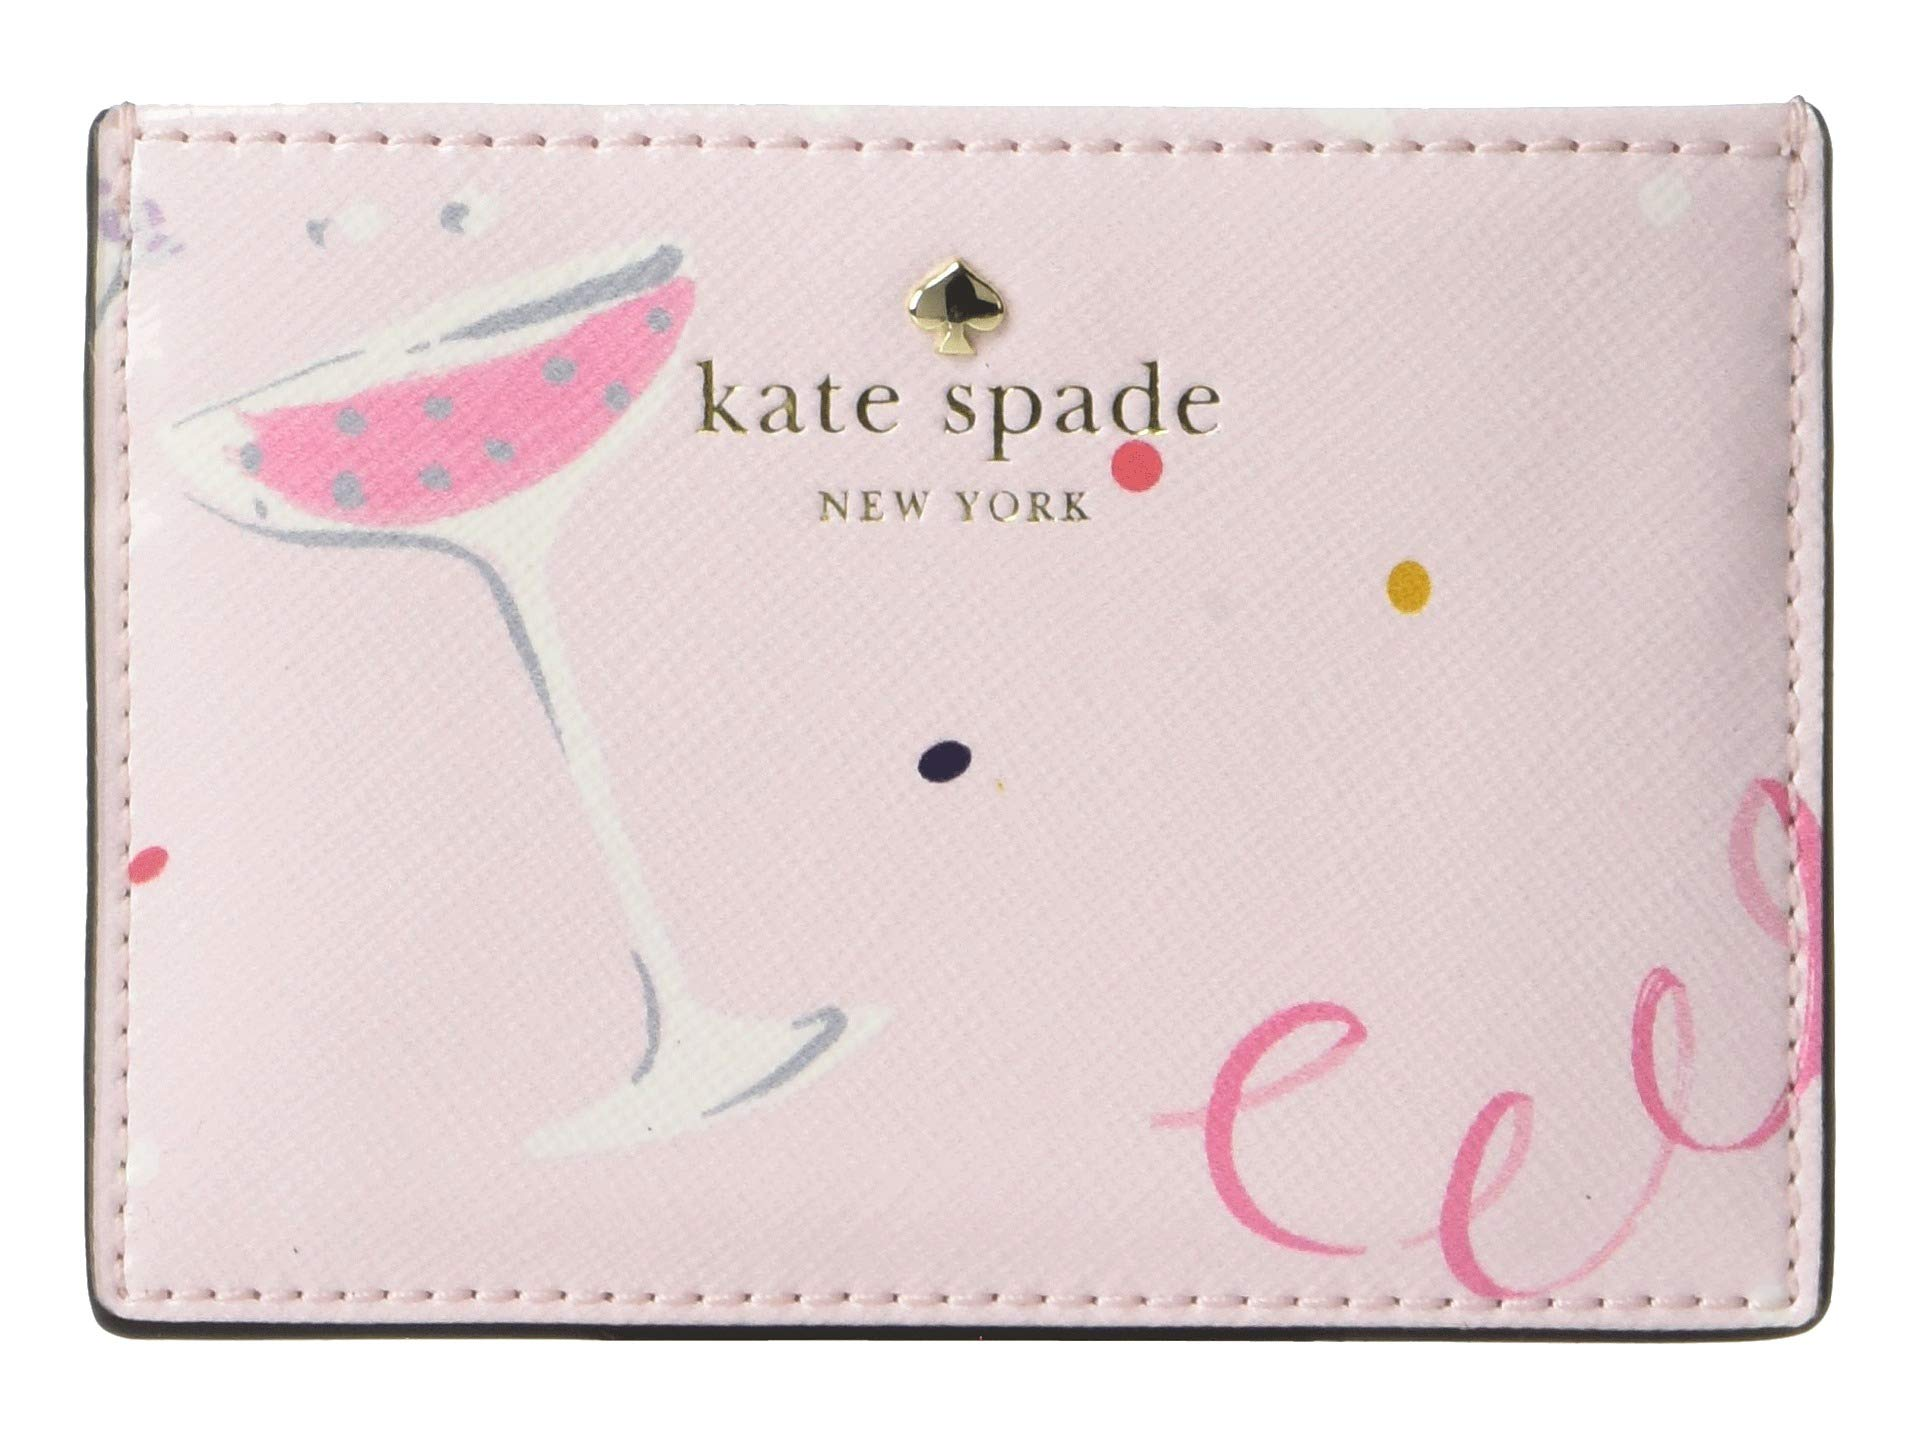 Kate Spade New York Women's Dashing Beauty Card Case, Multi, One Size